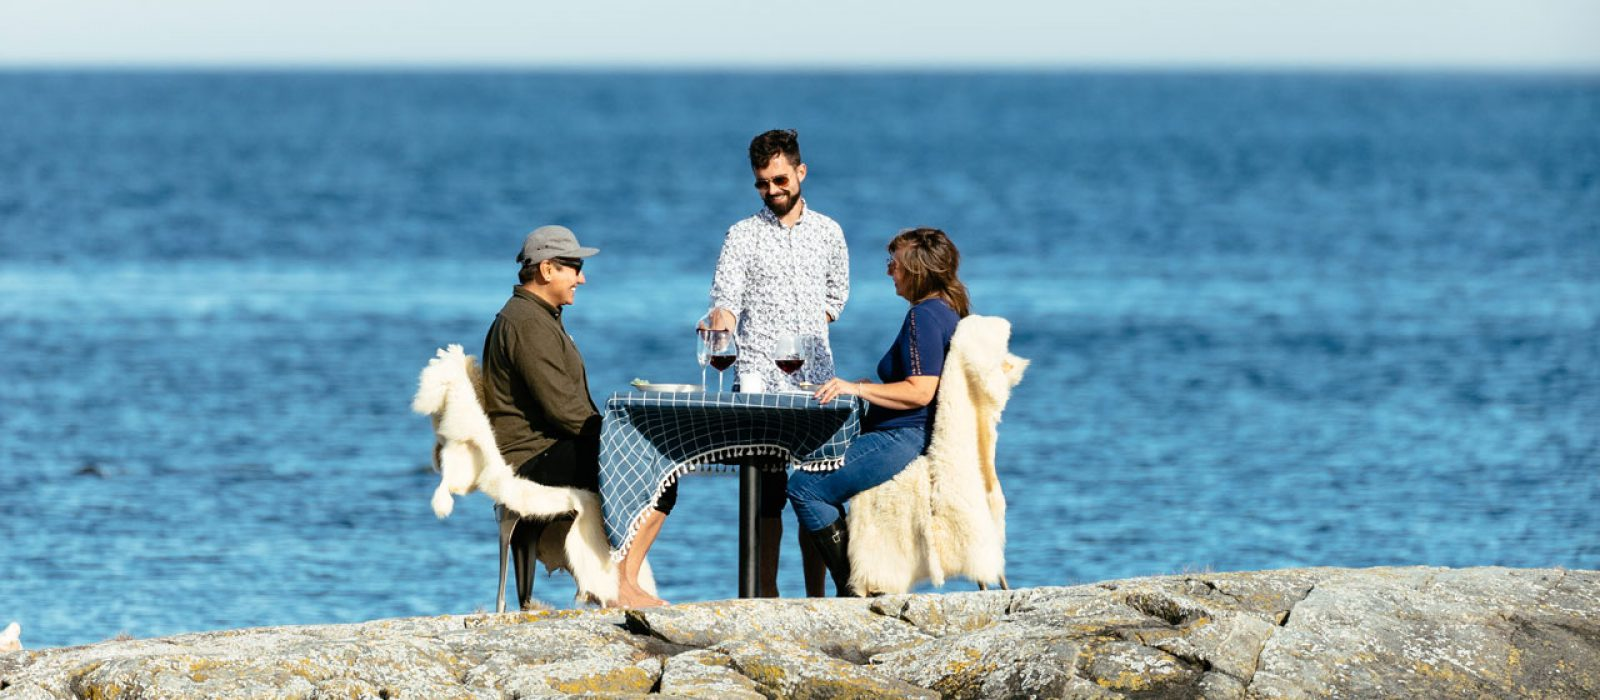 Couple enjoying a private culinary dining experience on a rocky ocean outcrop near Nimmo Bay Resort